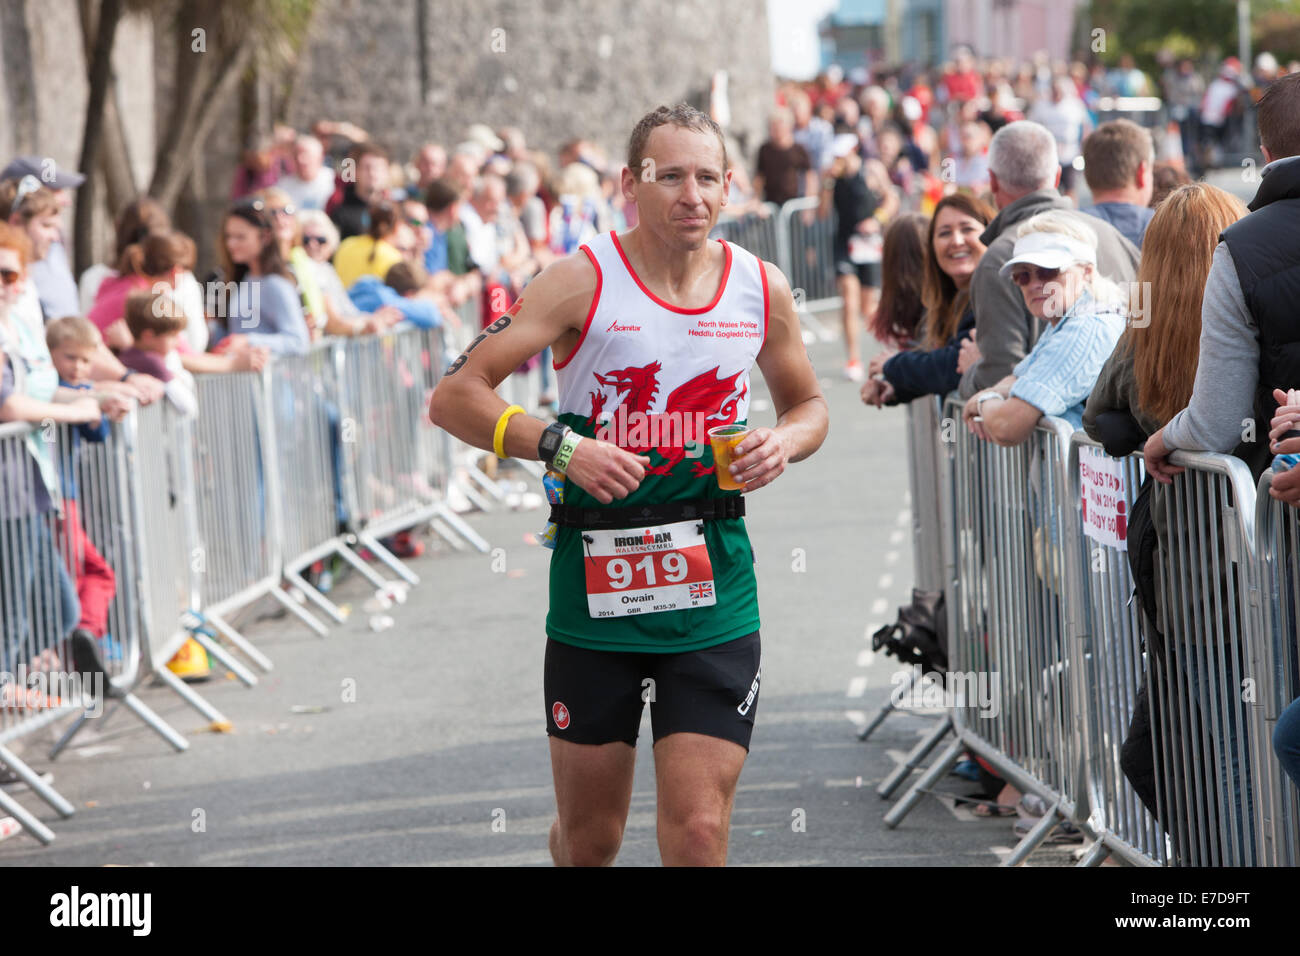 Tenby, Pembrokeshire, Wales, UK. 14th Sep, 2014. Running section of IRONMAN WALES in Tenby, Pembrokeshire, Wales. - Stock Image